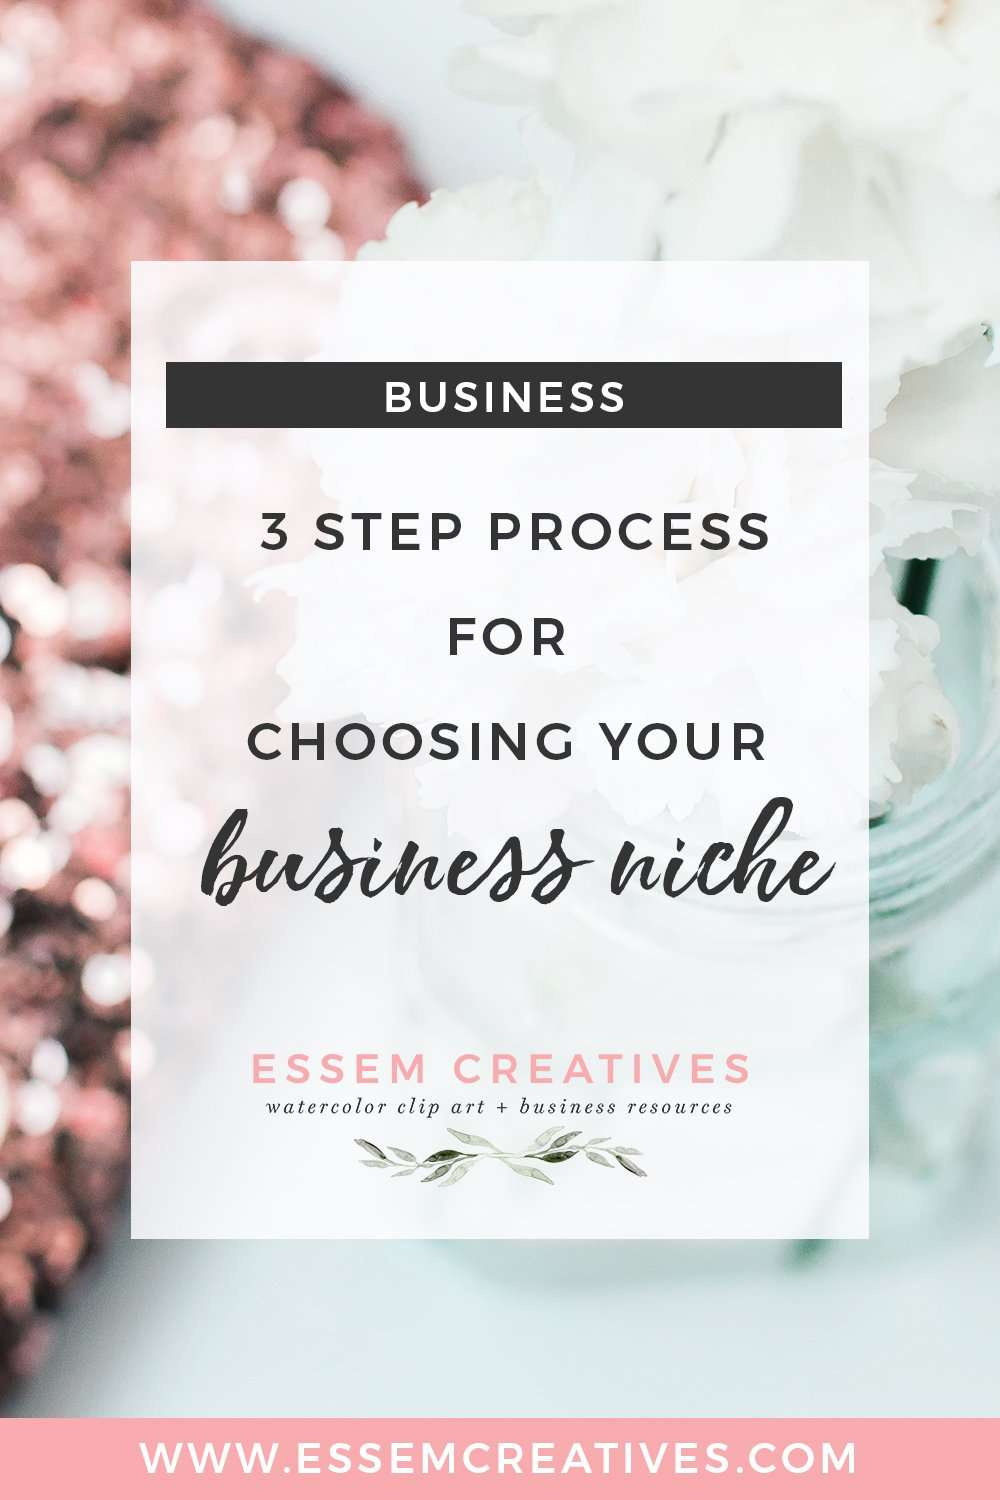 Choosing a business niche 3 step process